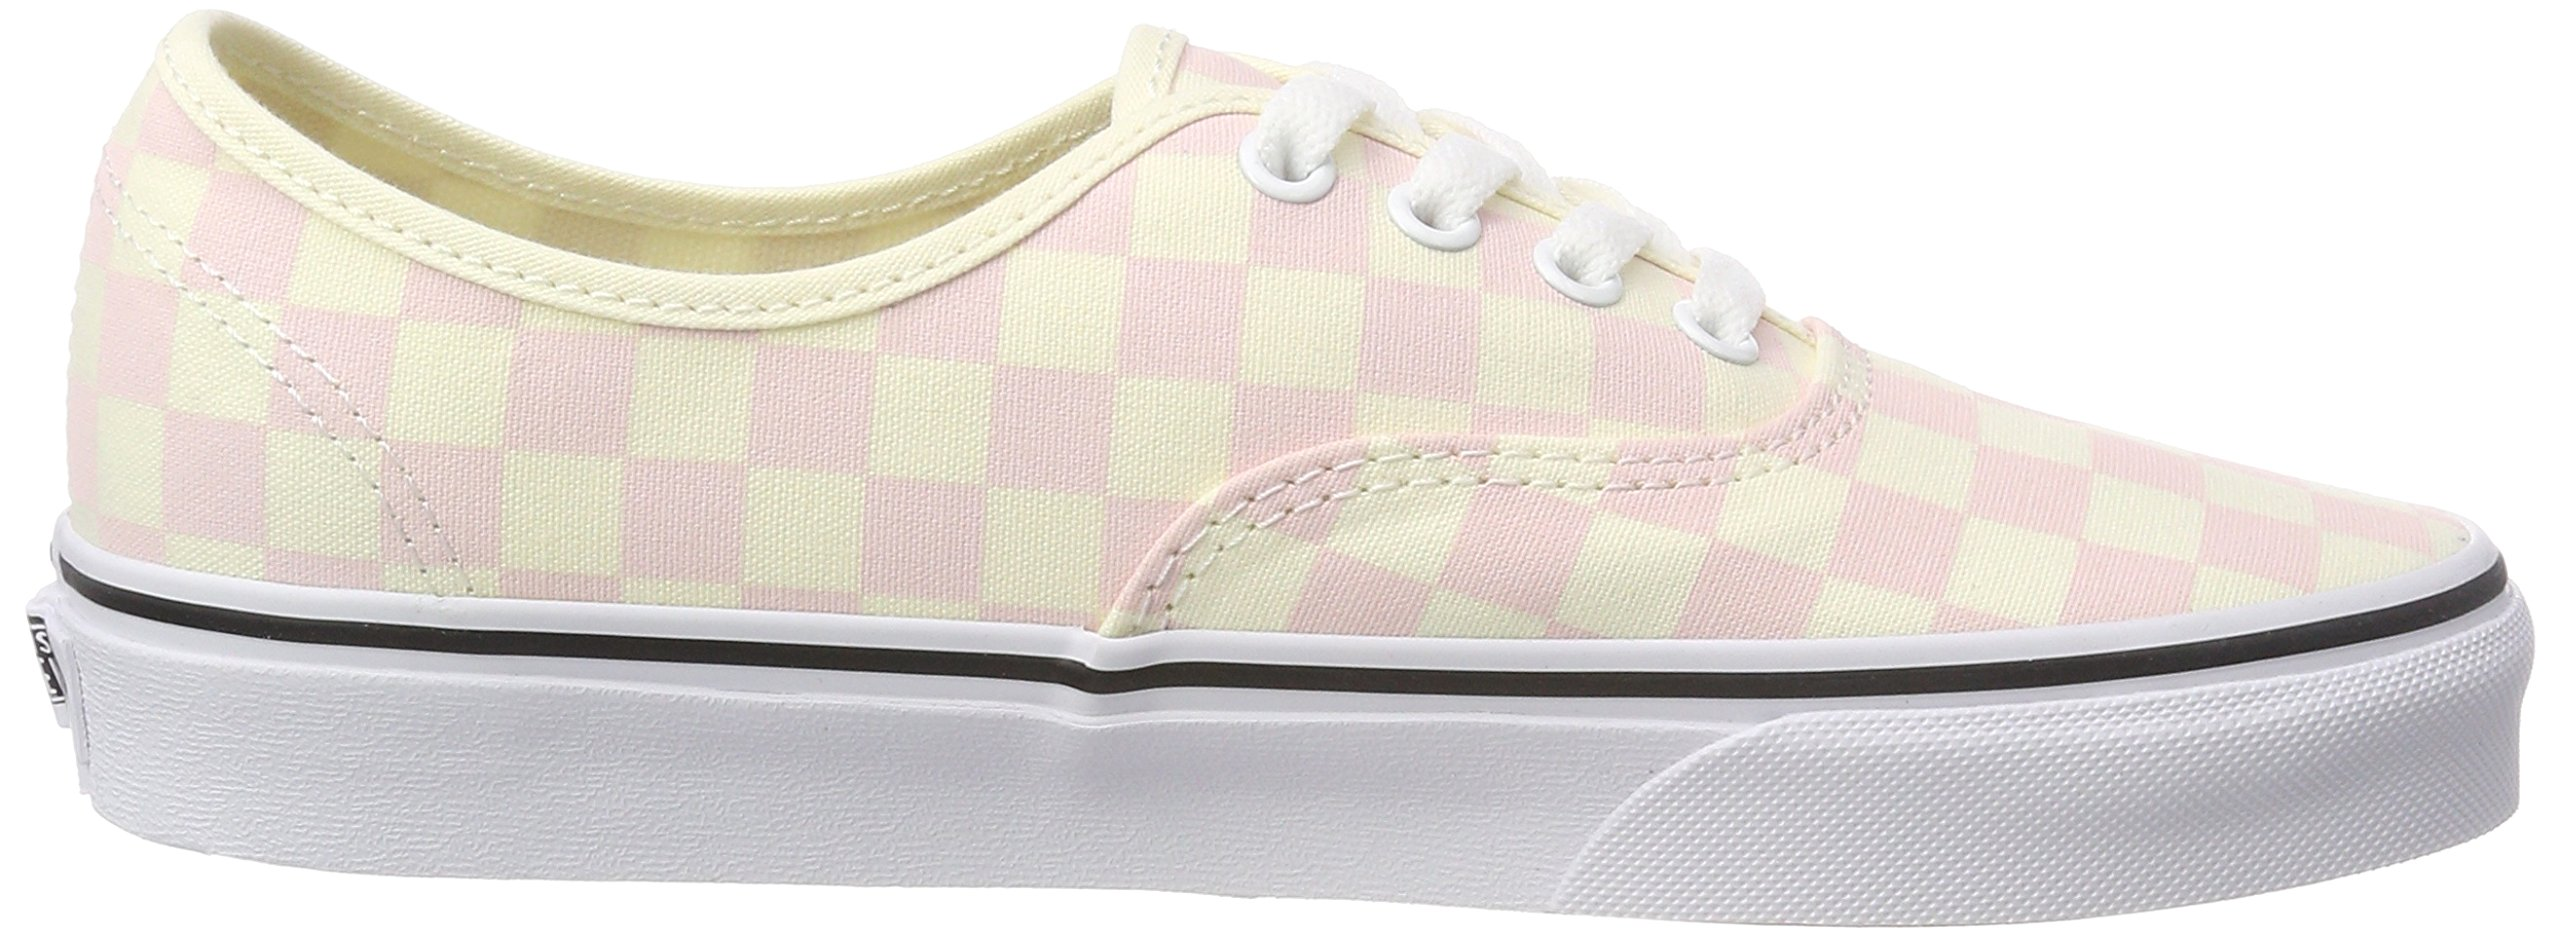 Vans Women's Authentic Trainers, Pink (Checkerboard) Chalk Pink/Classic White Q8l, 5.5 UK 38.5 EU by Vans (Image #6)